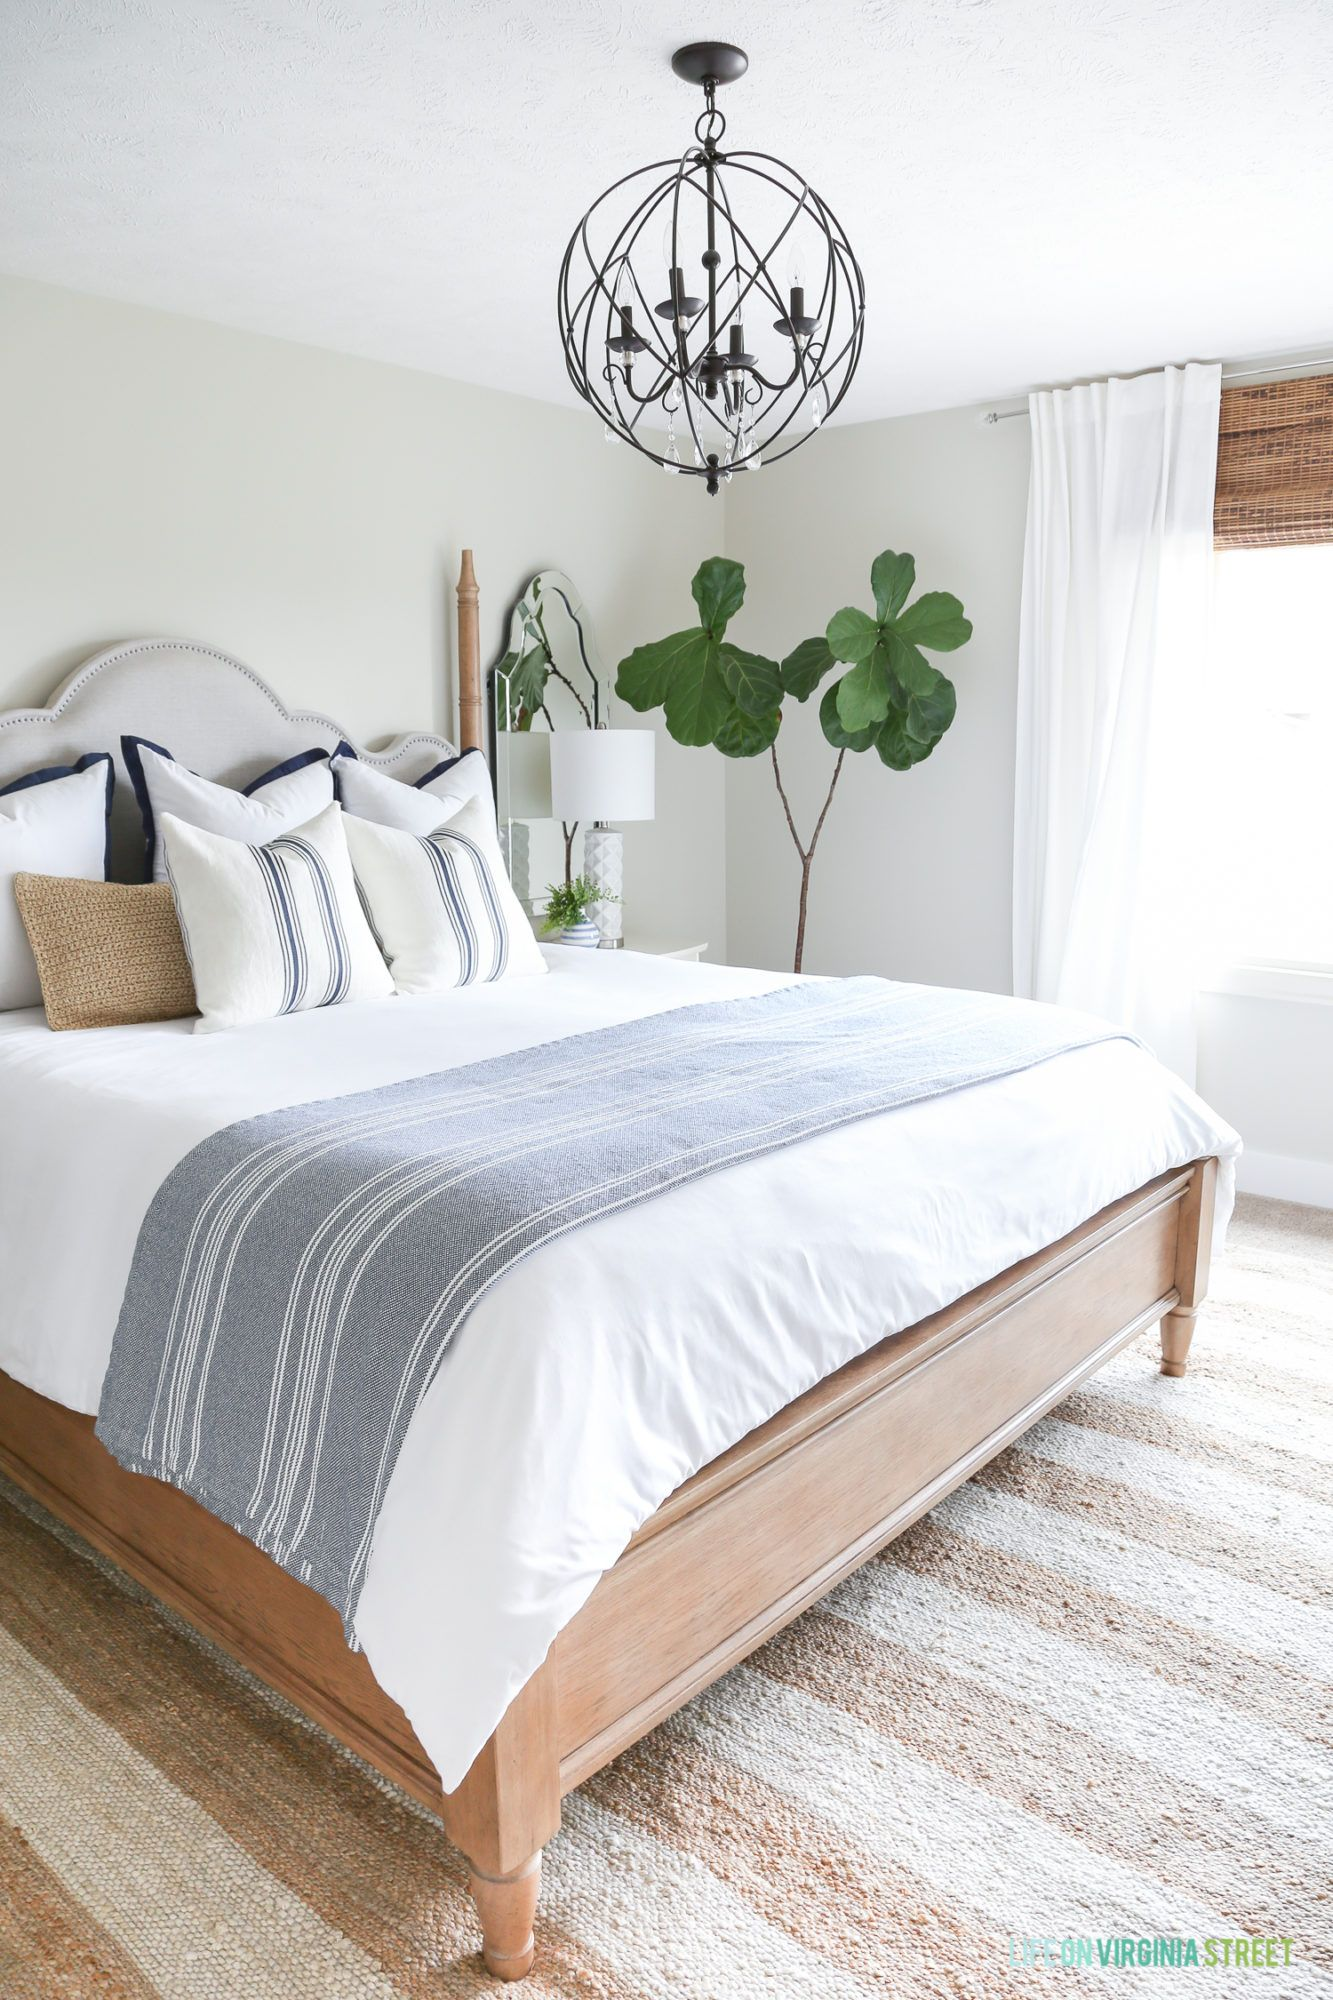 A Coastal Farmhouse Style Bedroom With A Striped Rug, Orb